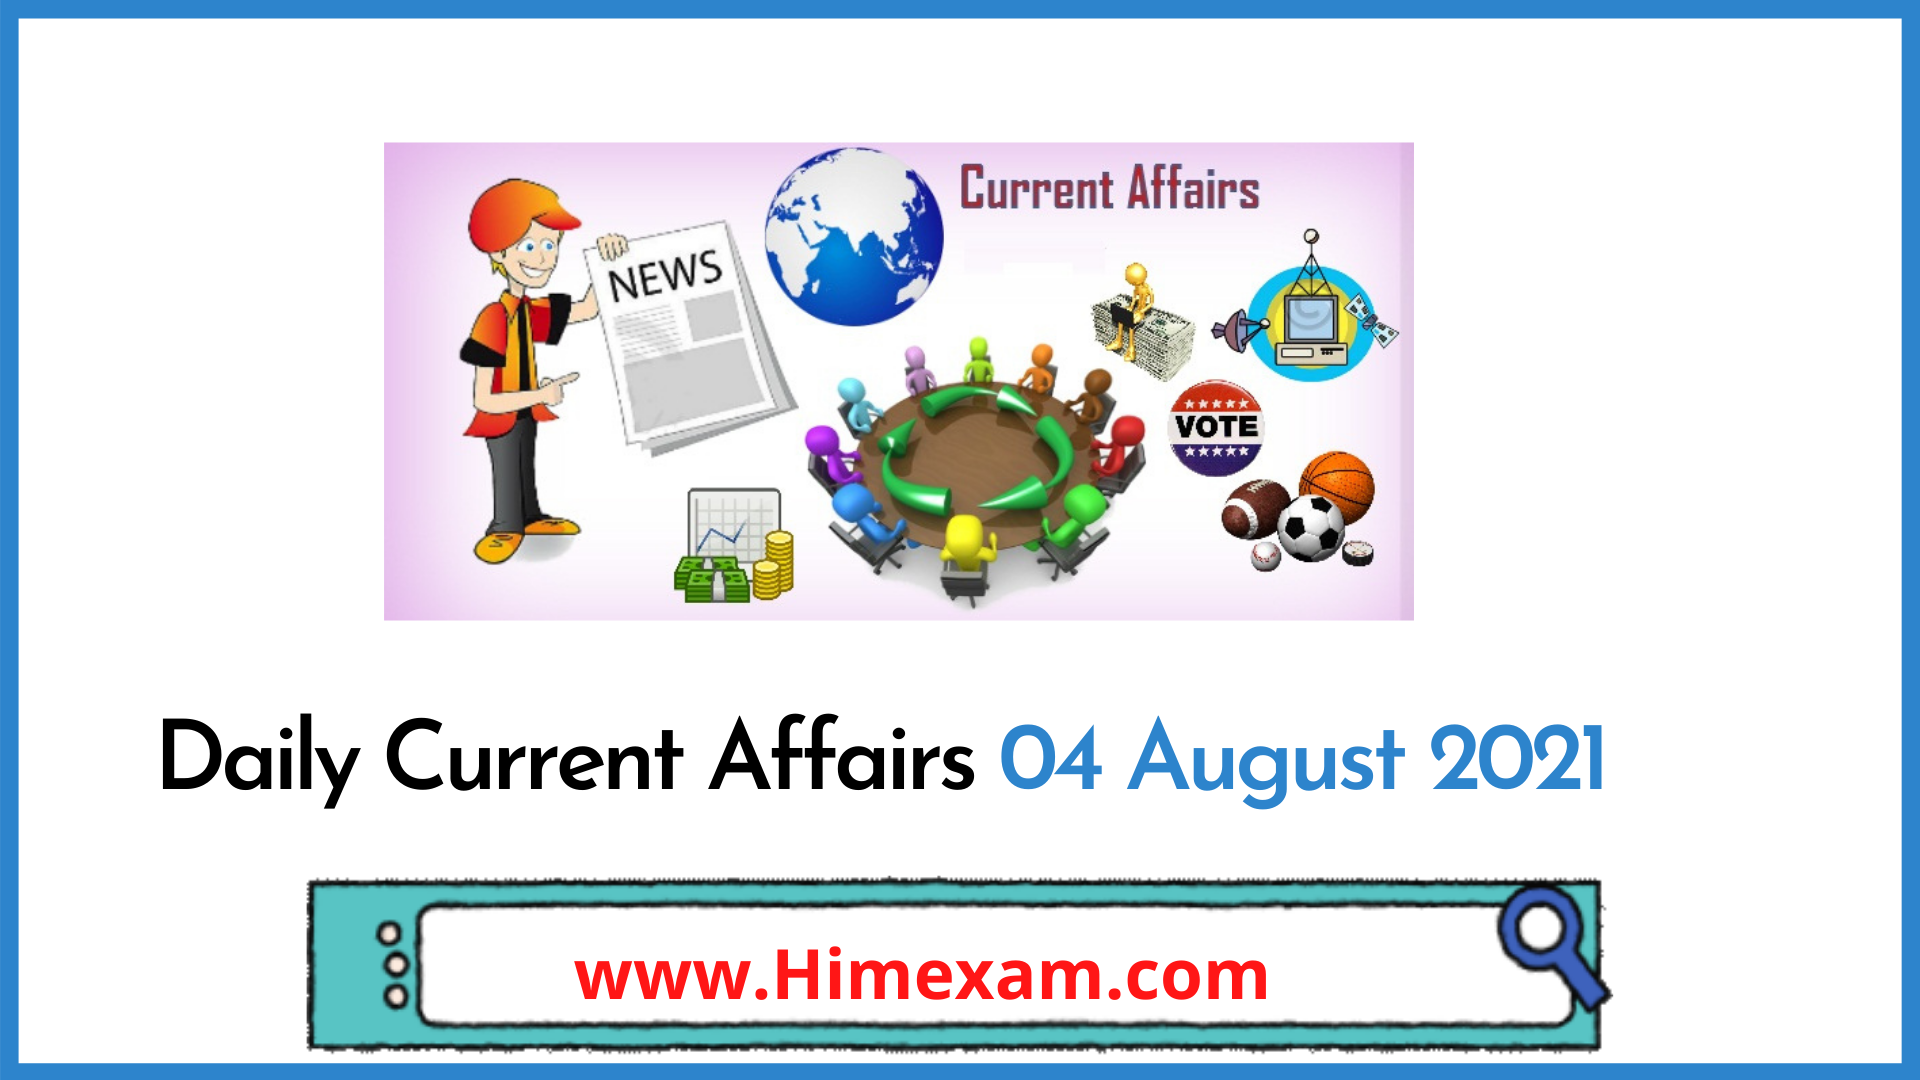 Daily Current Affairs 04 August 2021